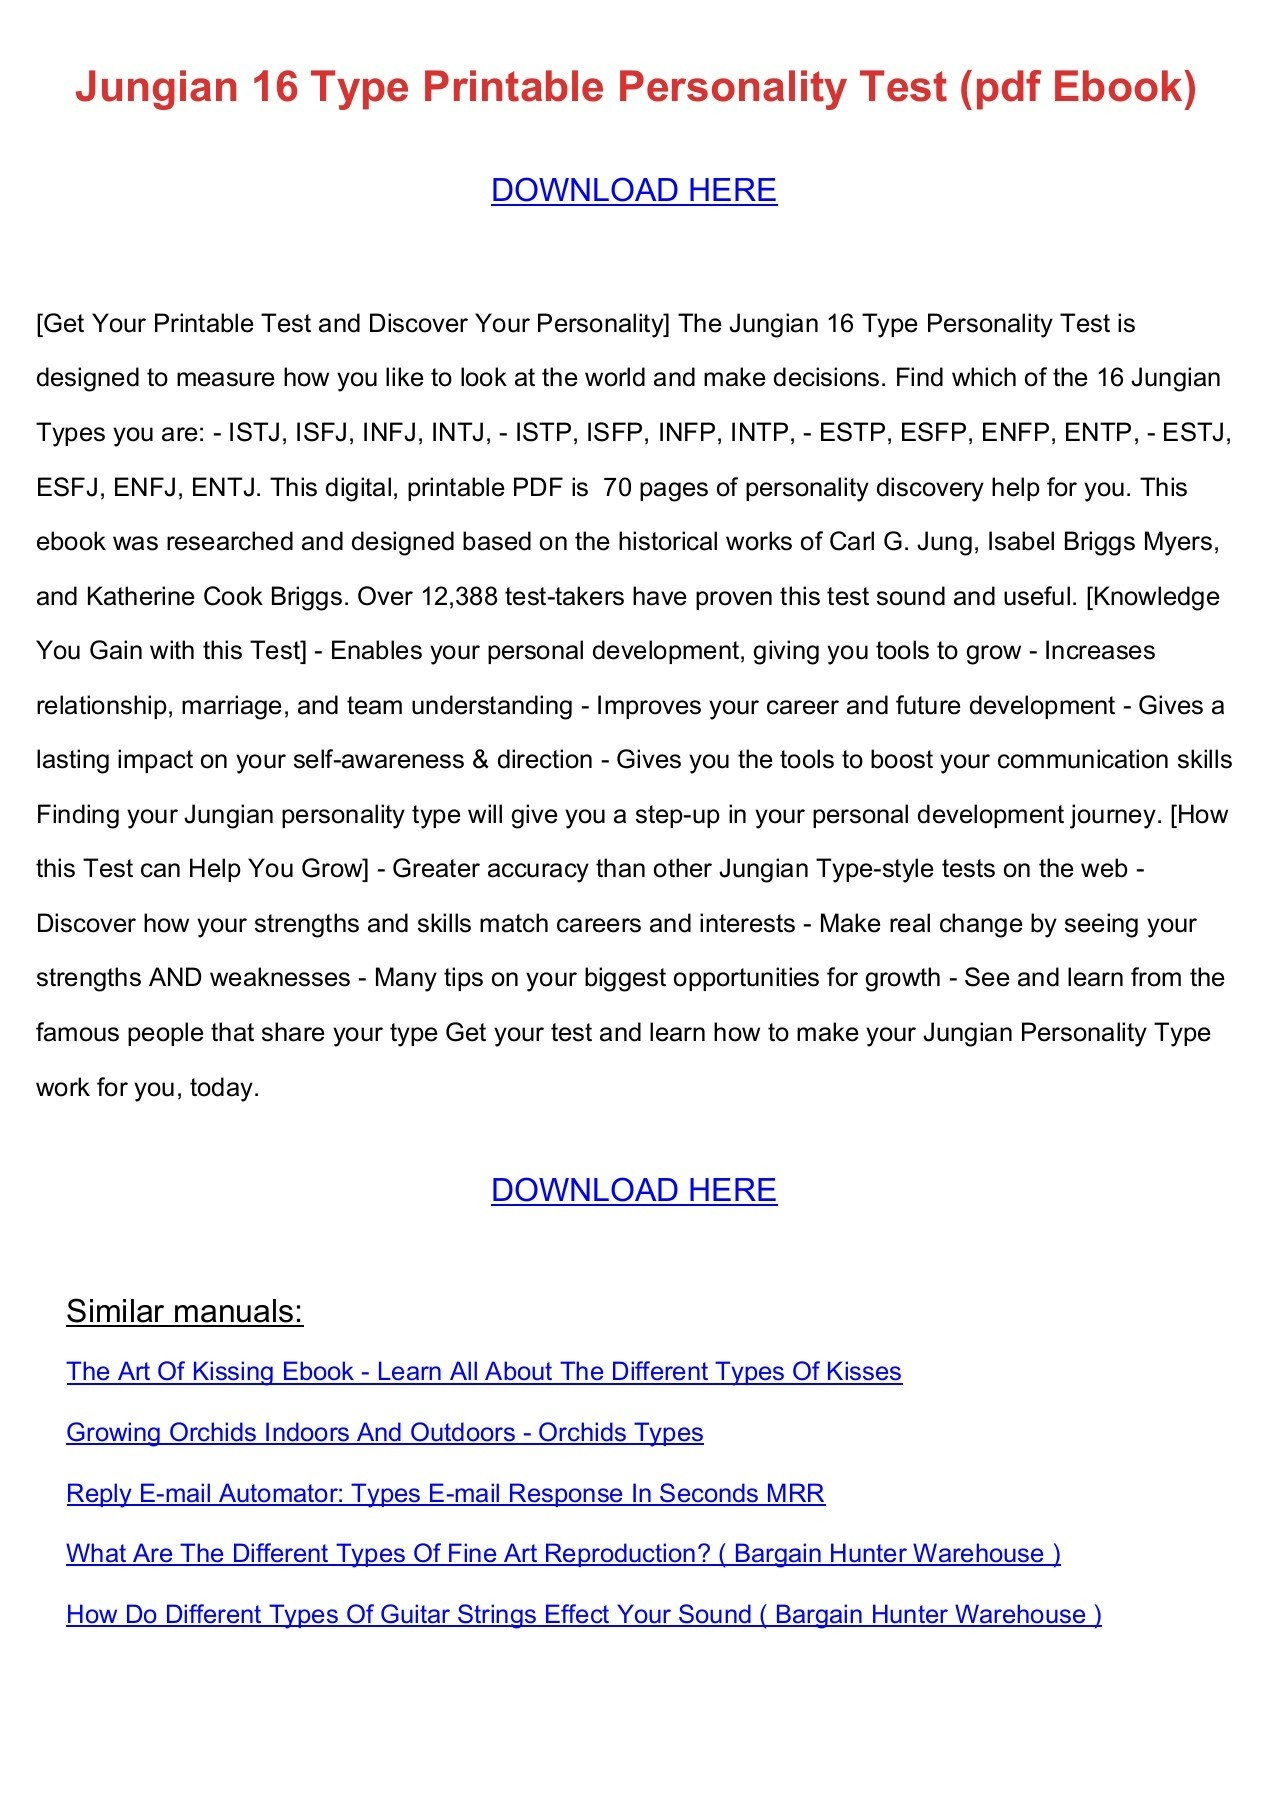 Jungian 16 Type Printable Personality Test (Pdf Ebook) Pages 1 - 6 - Myers Briggs Personality Test Free Online Printable